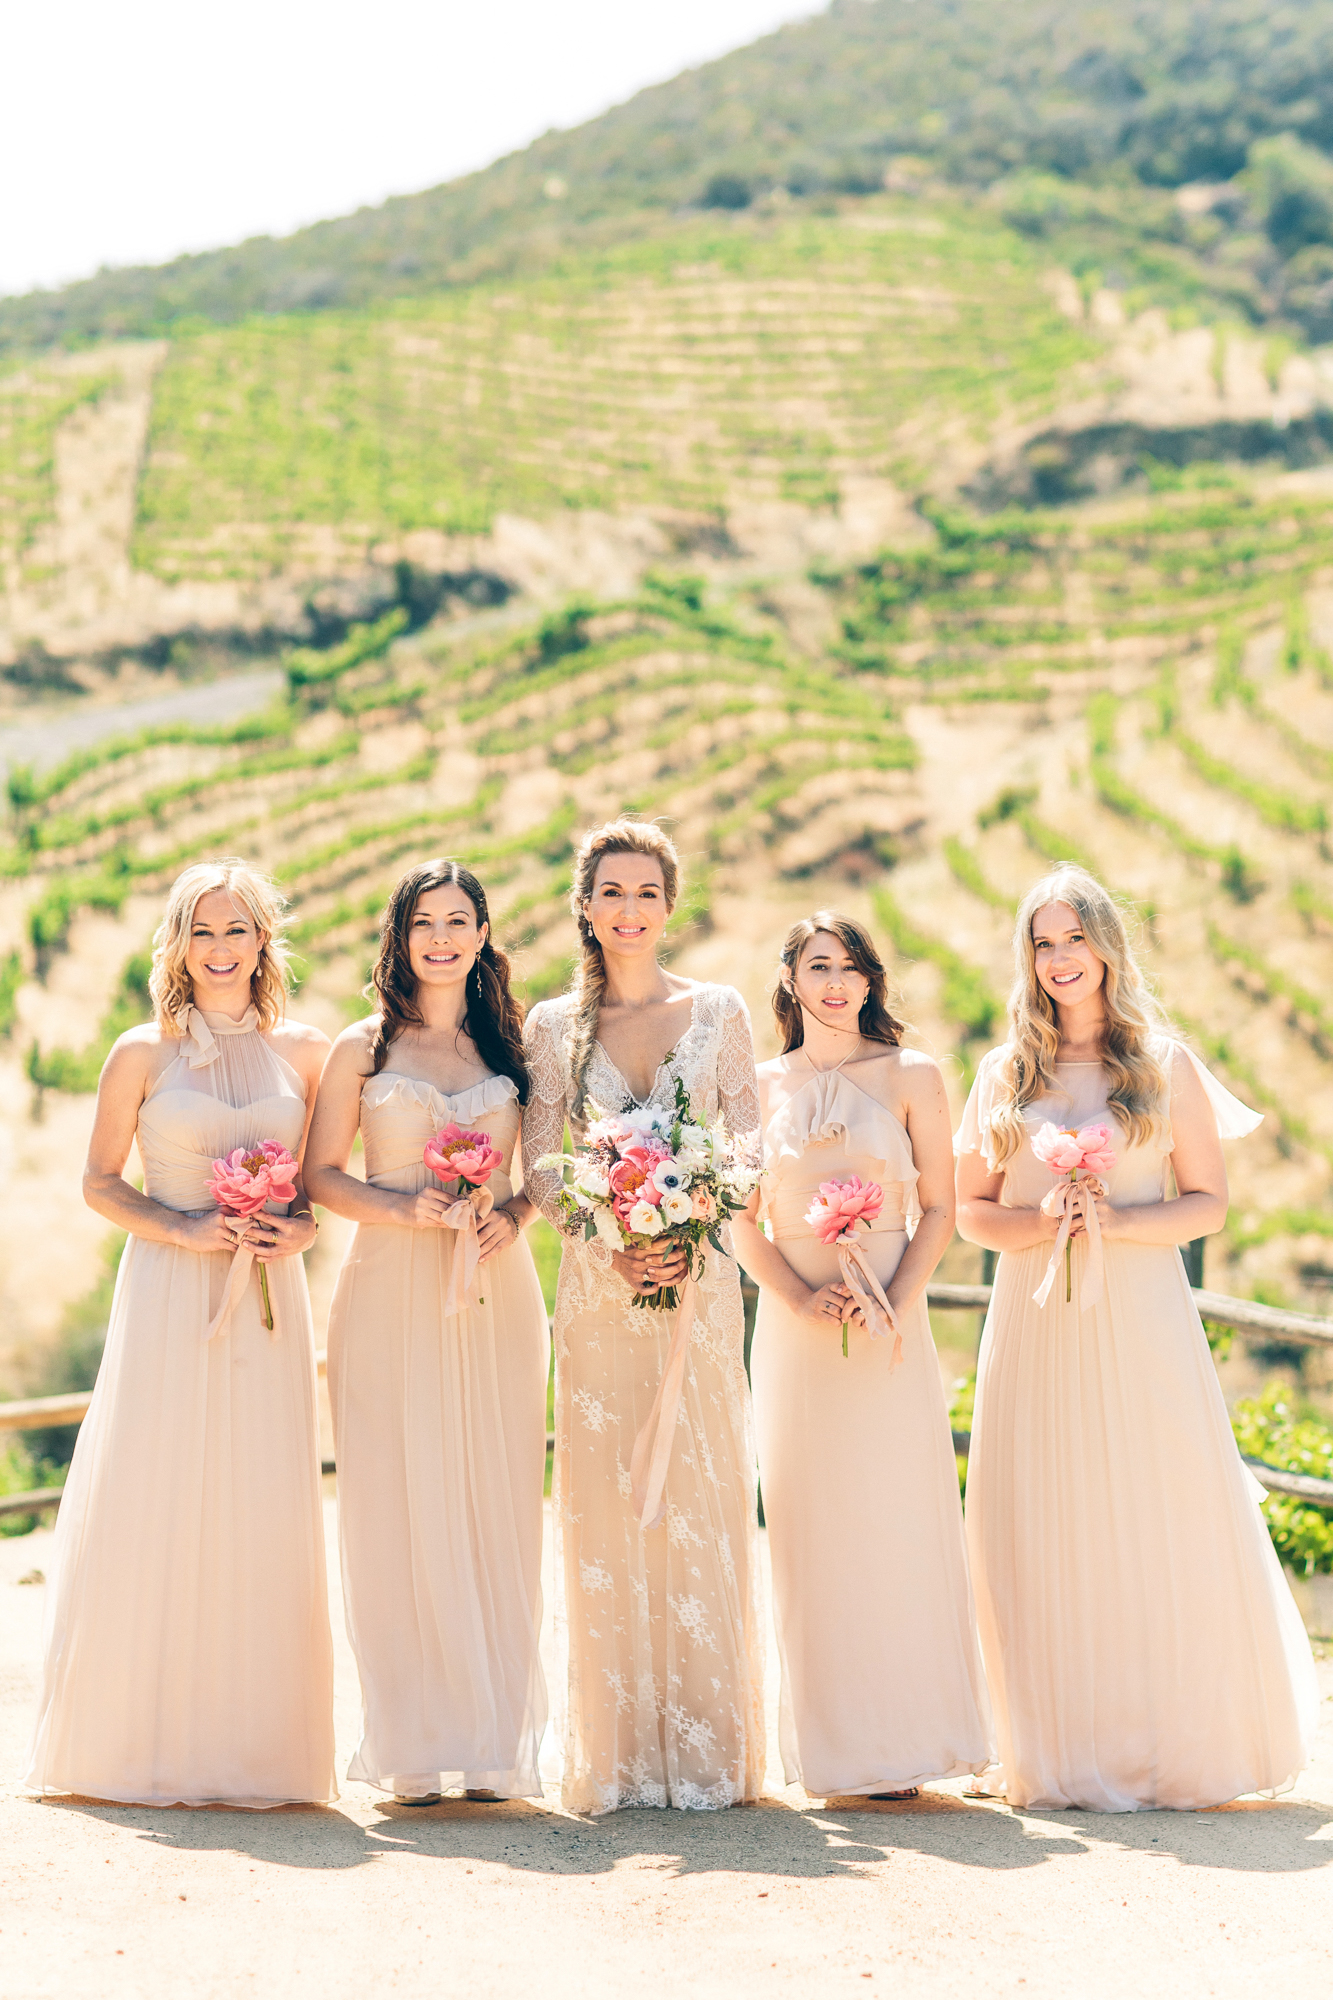 An elegant bohemian wedding at saddlerock ranch los angeles saddlerock ranch in malibu california represented their love of nature the mountains specifically are a place of freedom and joy symbolizing where we junglespirit Gallery